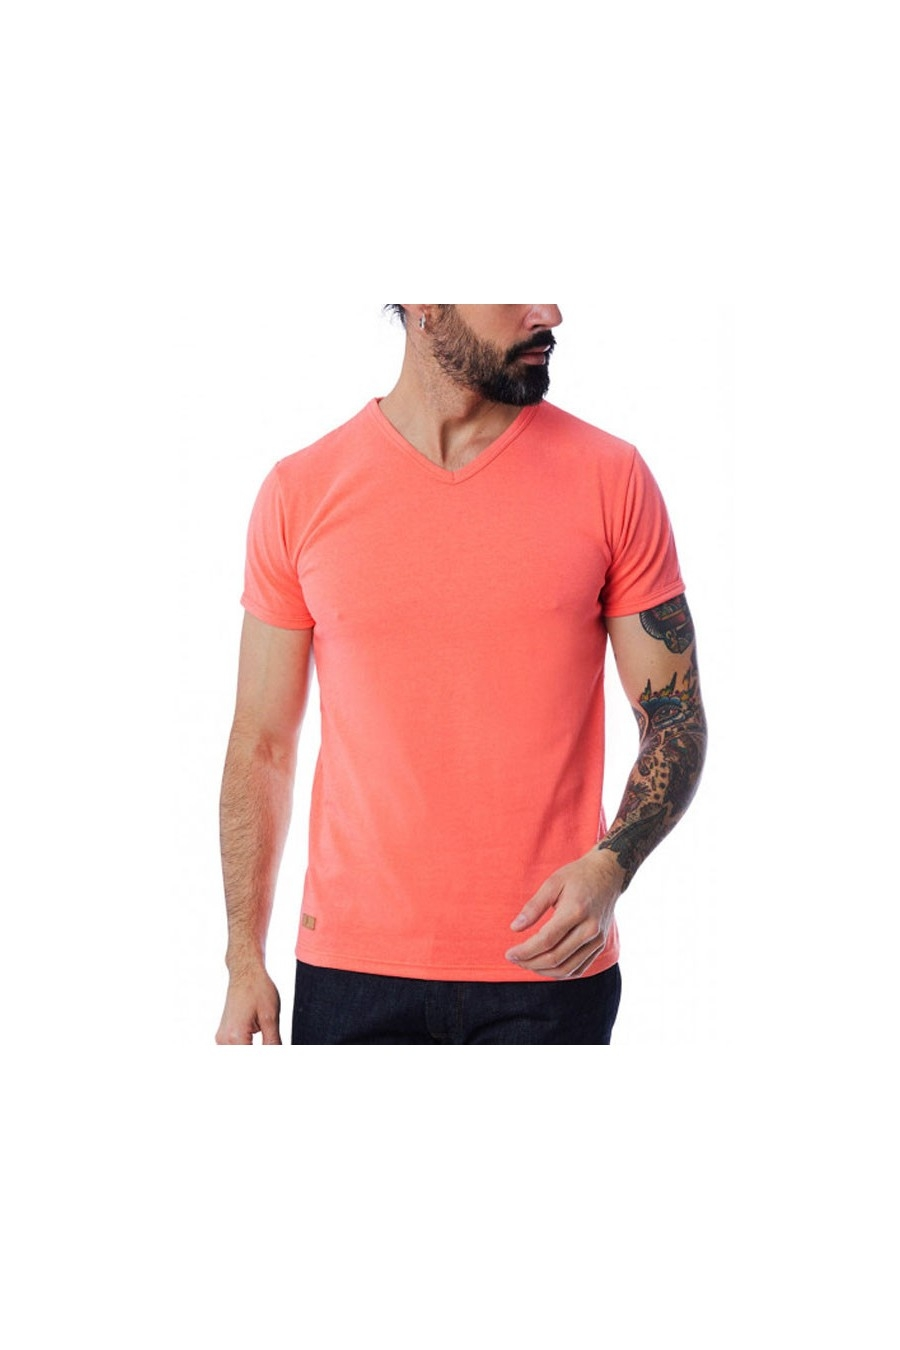 T-SHIRT HOMME MANCHE COURTE COL V CORAIL - Made in France & 100% Recyclé